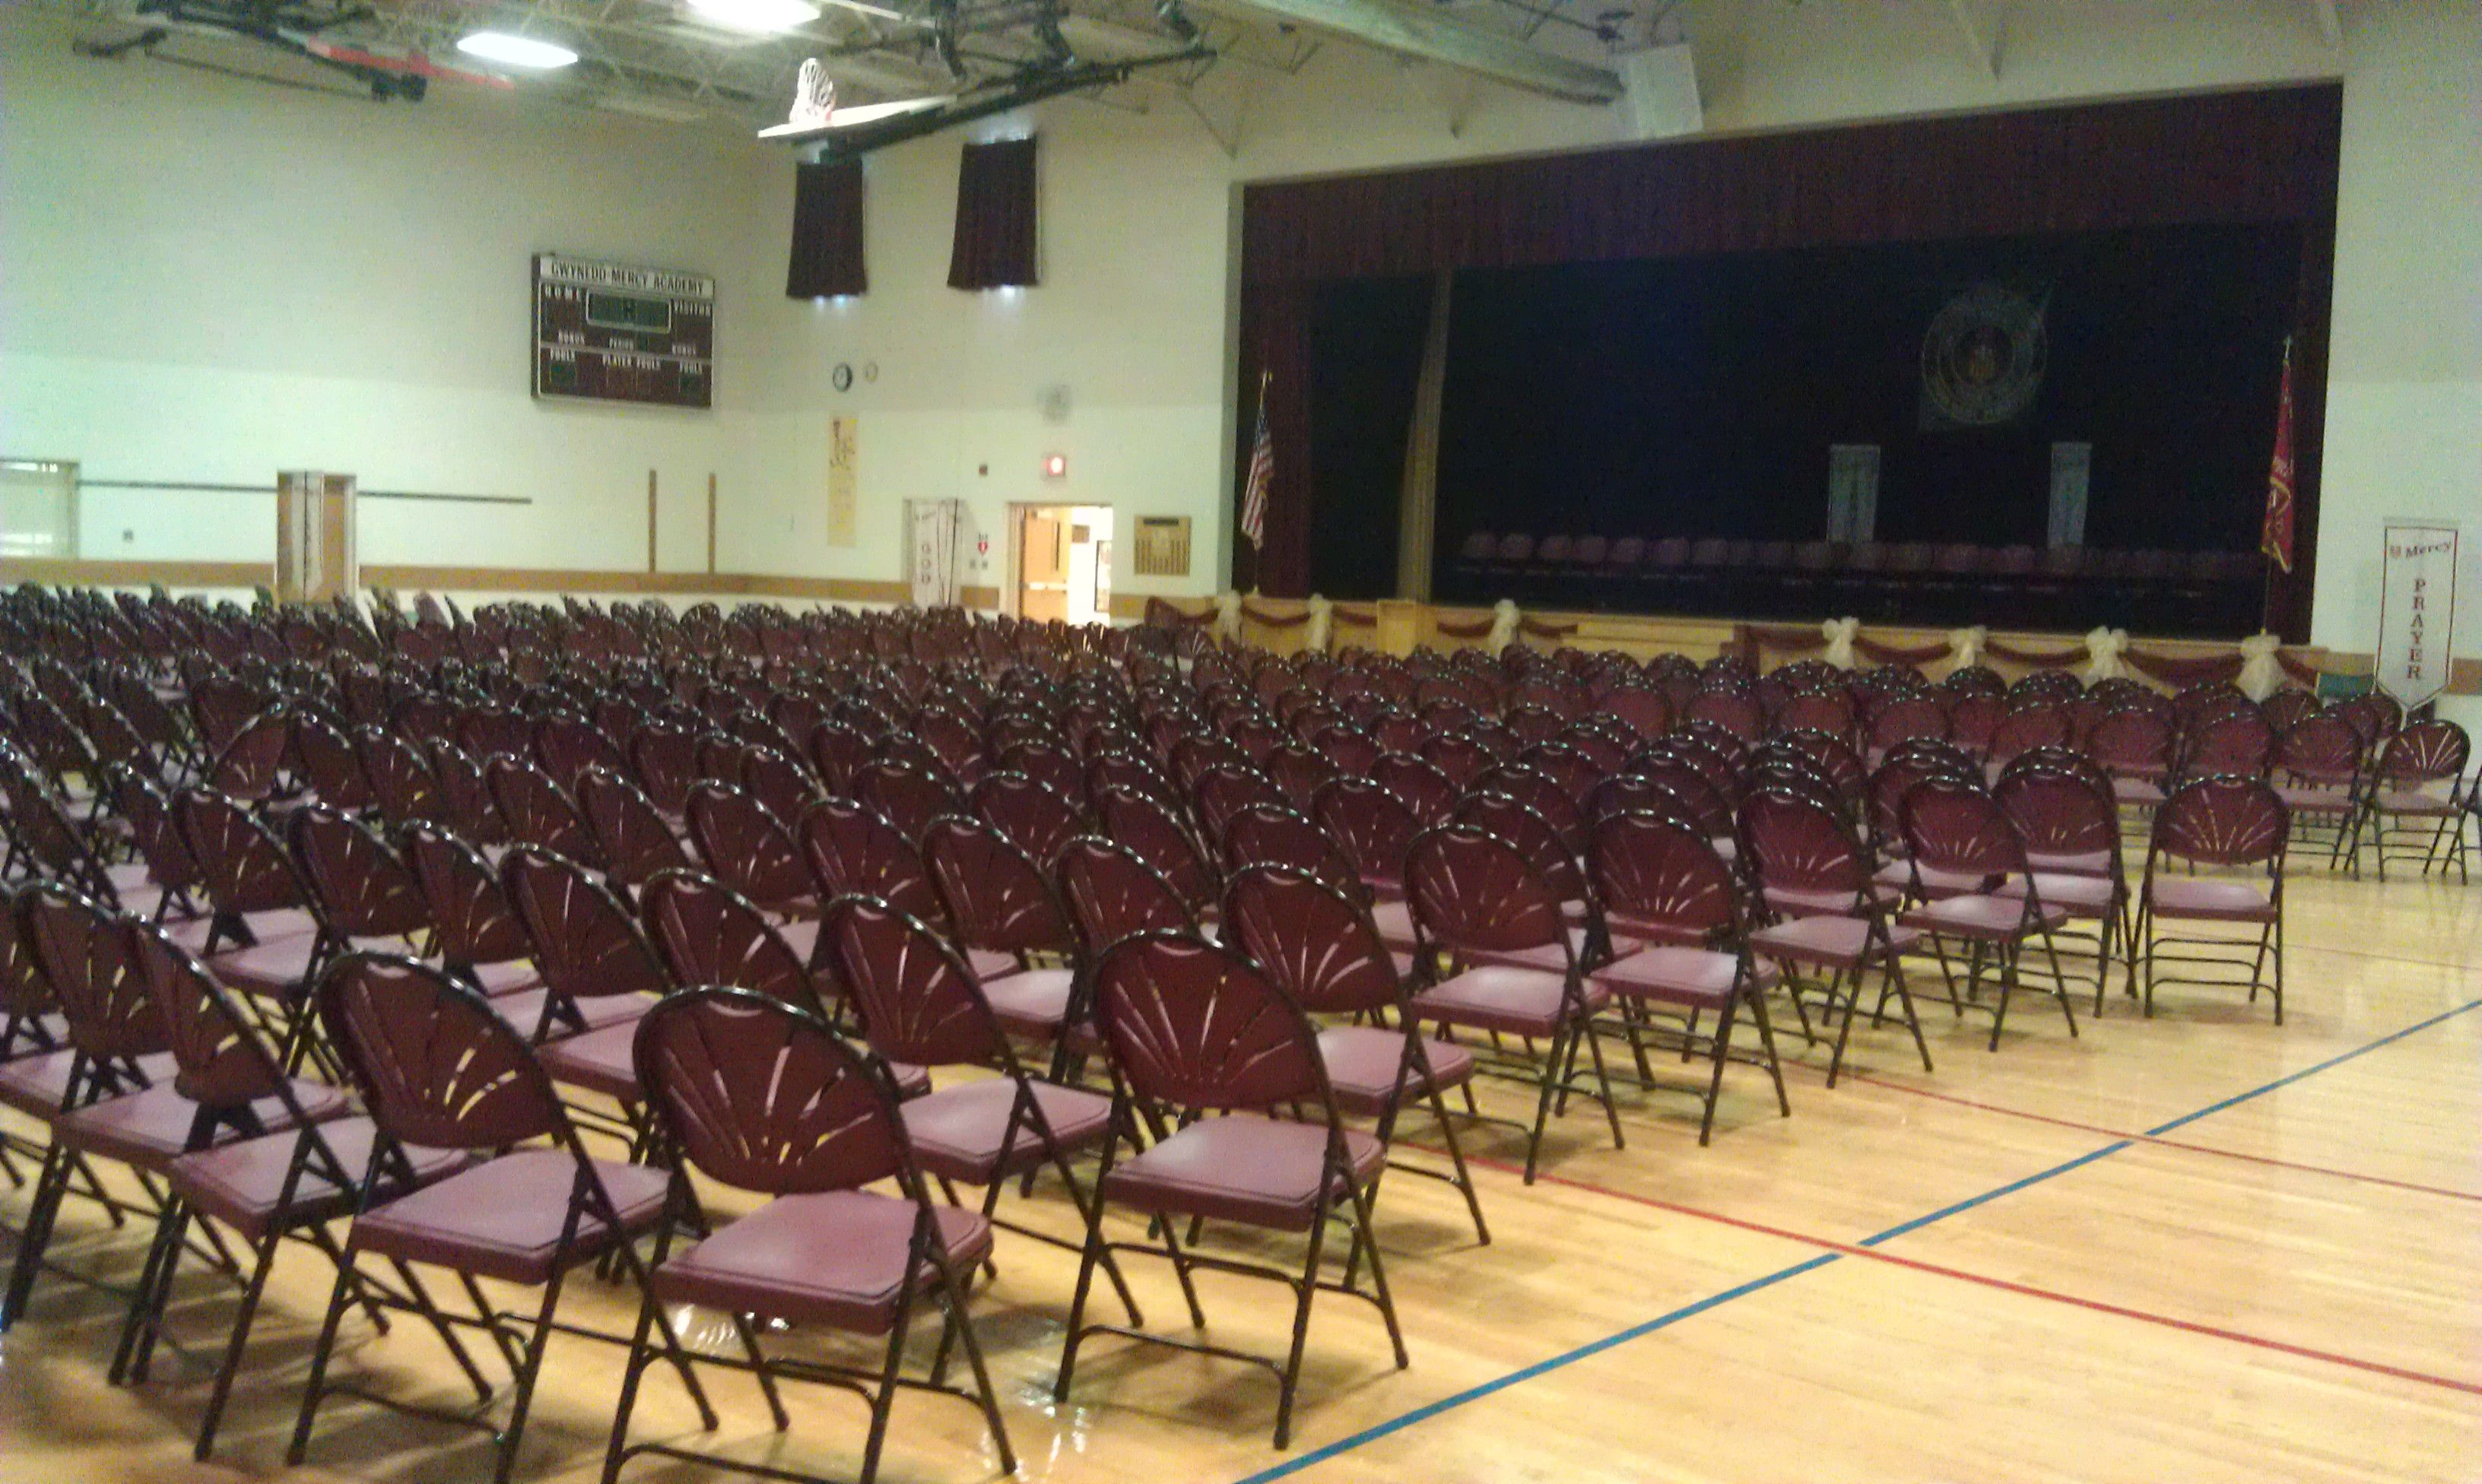 School PA System Naamans Creek Audio Video Systems 353 Indian Run Rd Avondale, PA 19311 (610) 268-3833